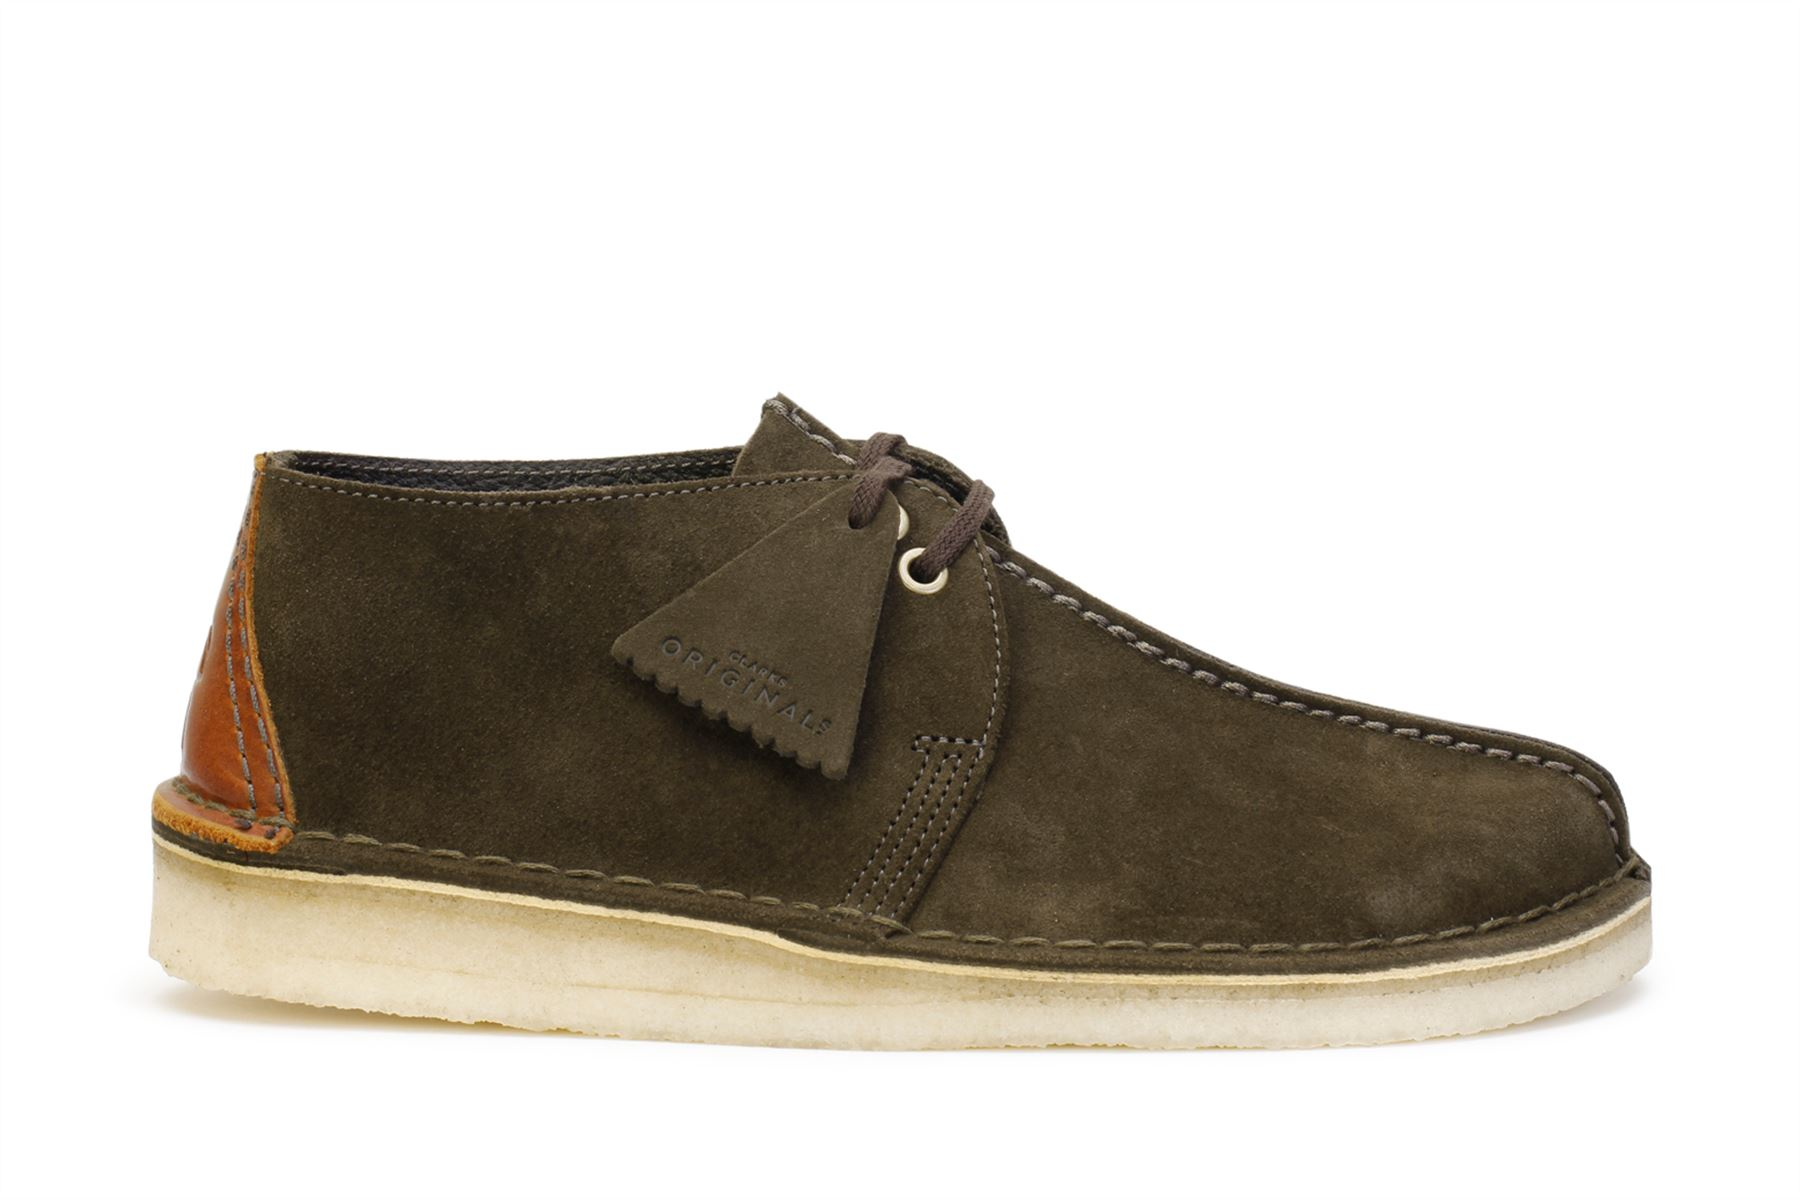 e800f702 Details about Clarks Originals Men's Desert Trek Shoes Dark Green Suede  26134762